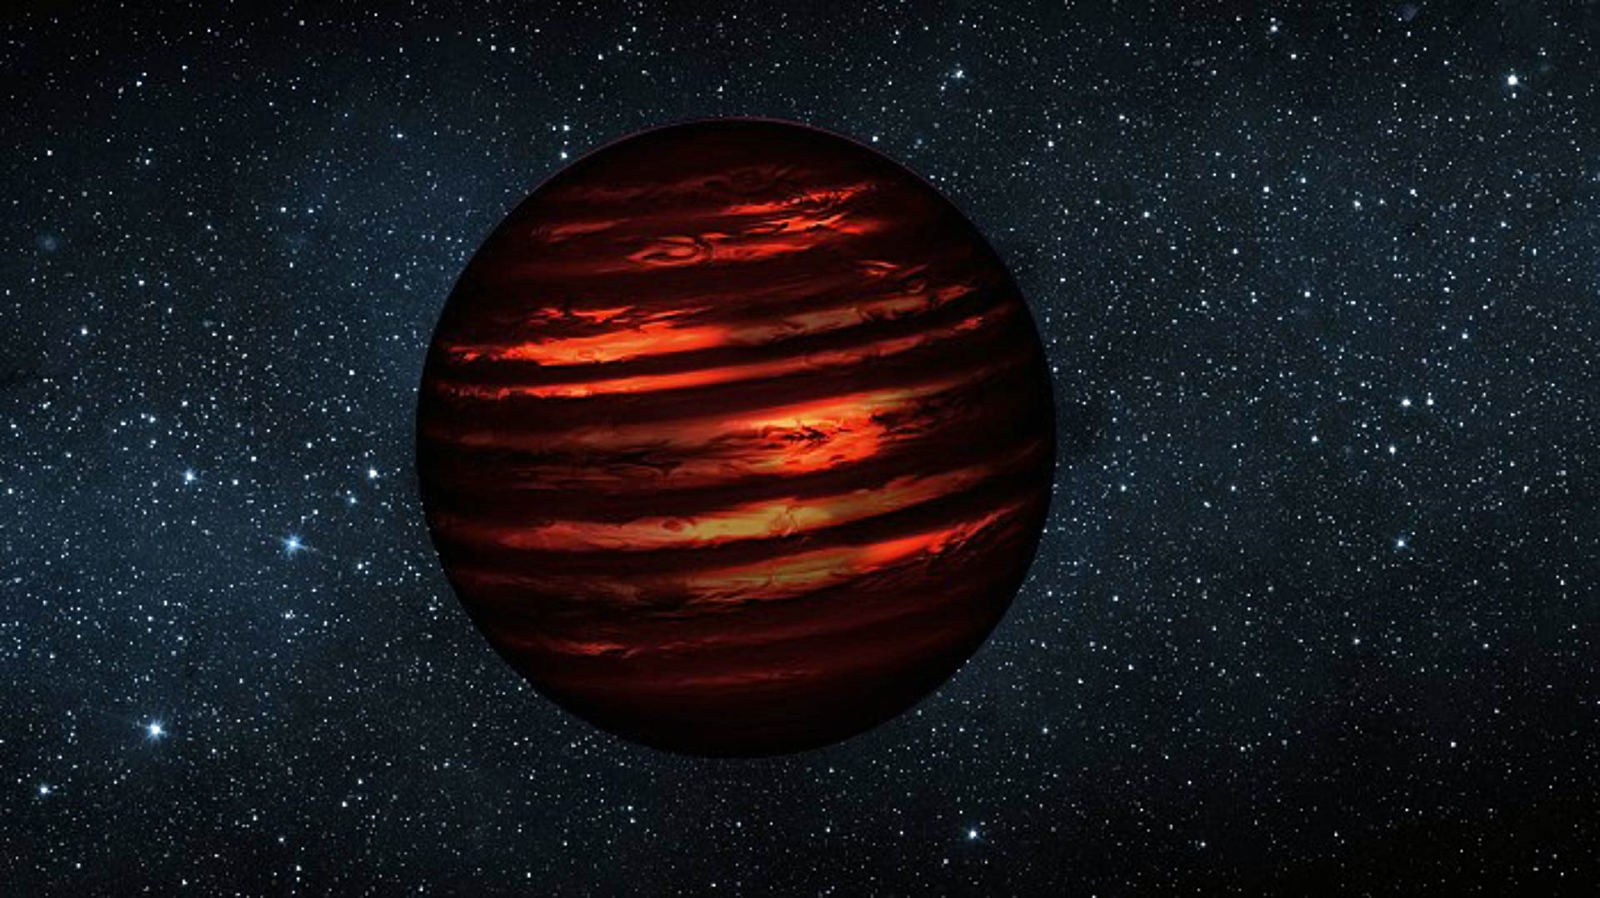 brown dwarf in outer space - photo #16